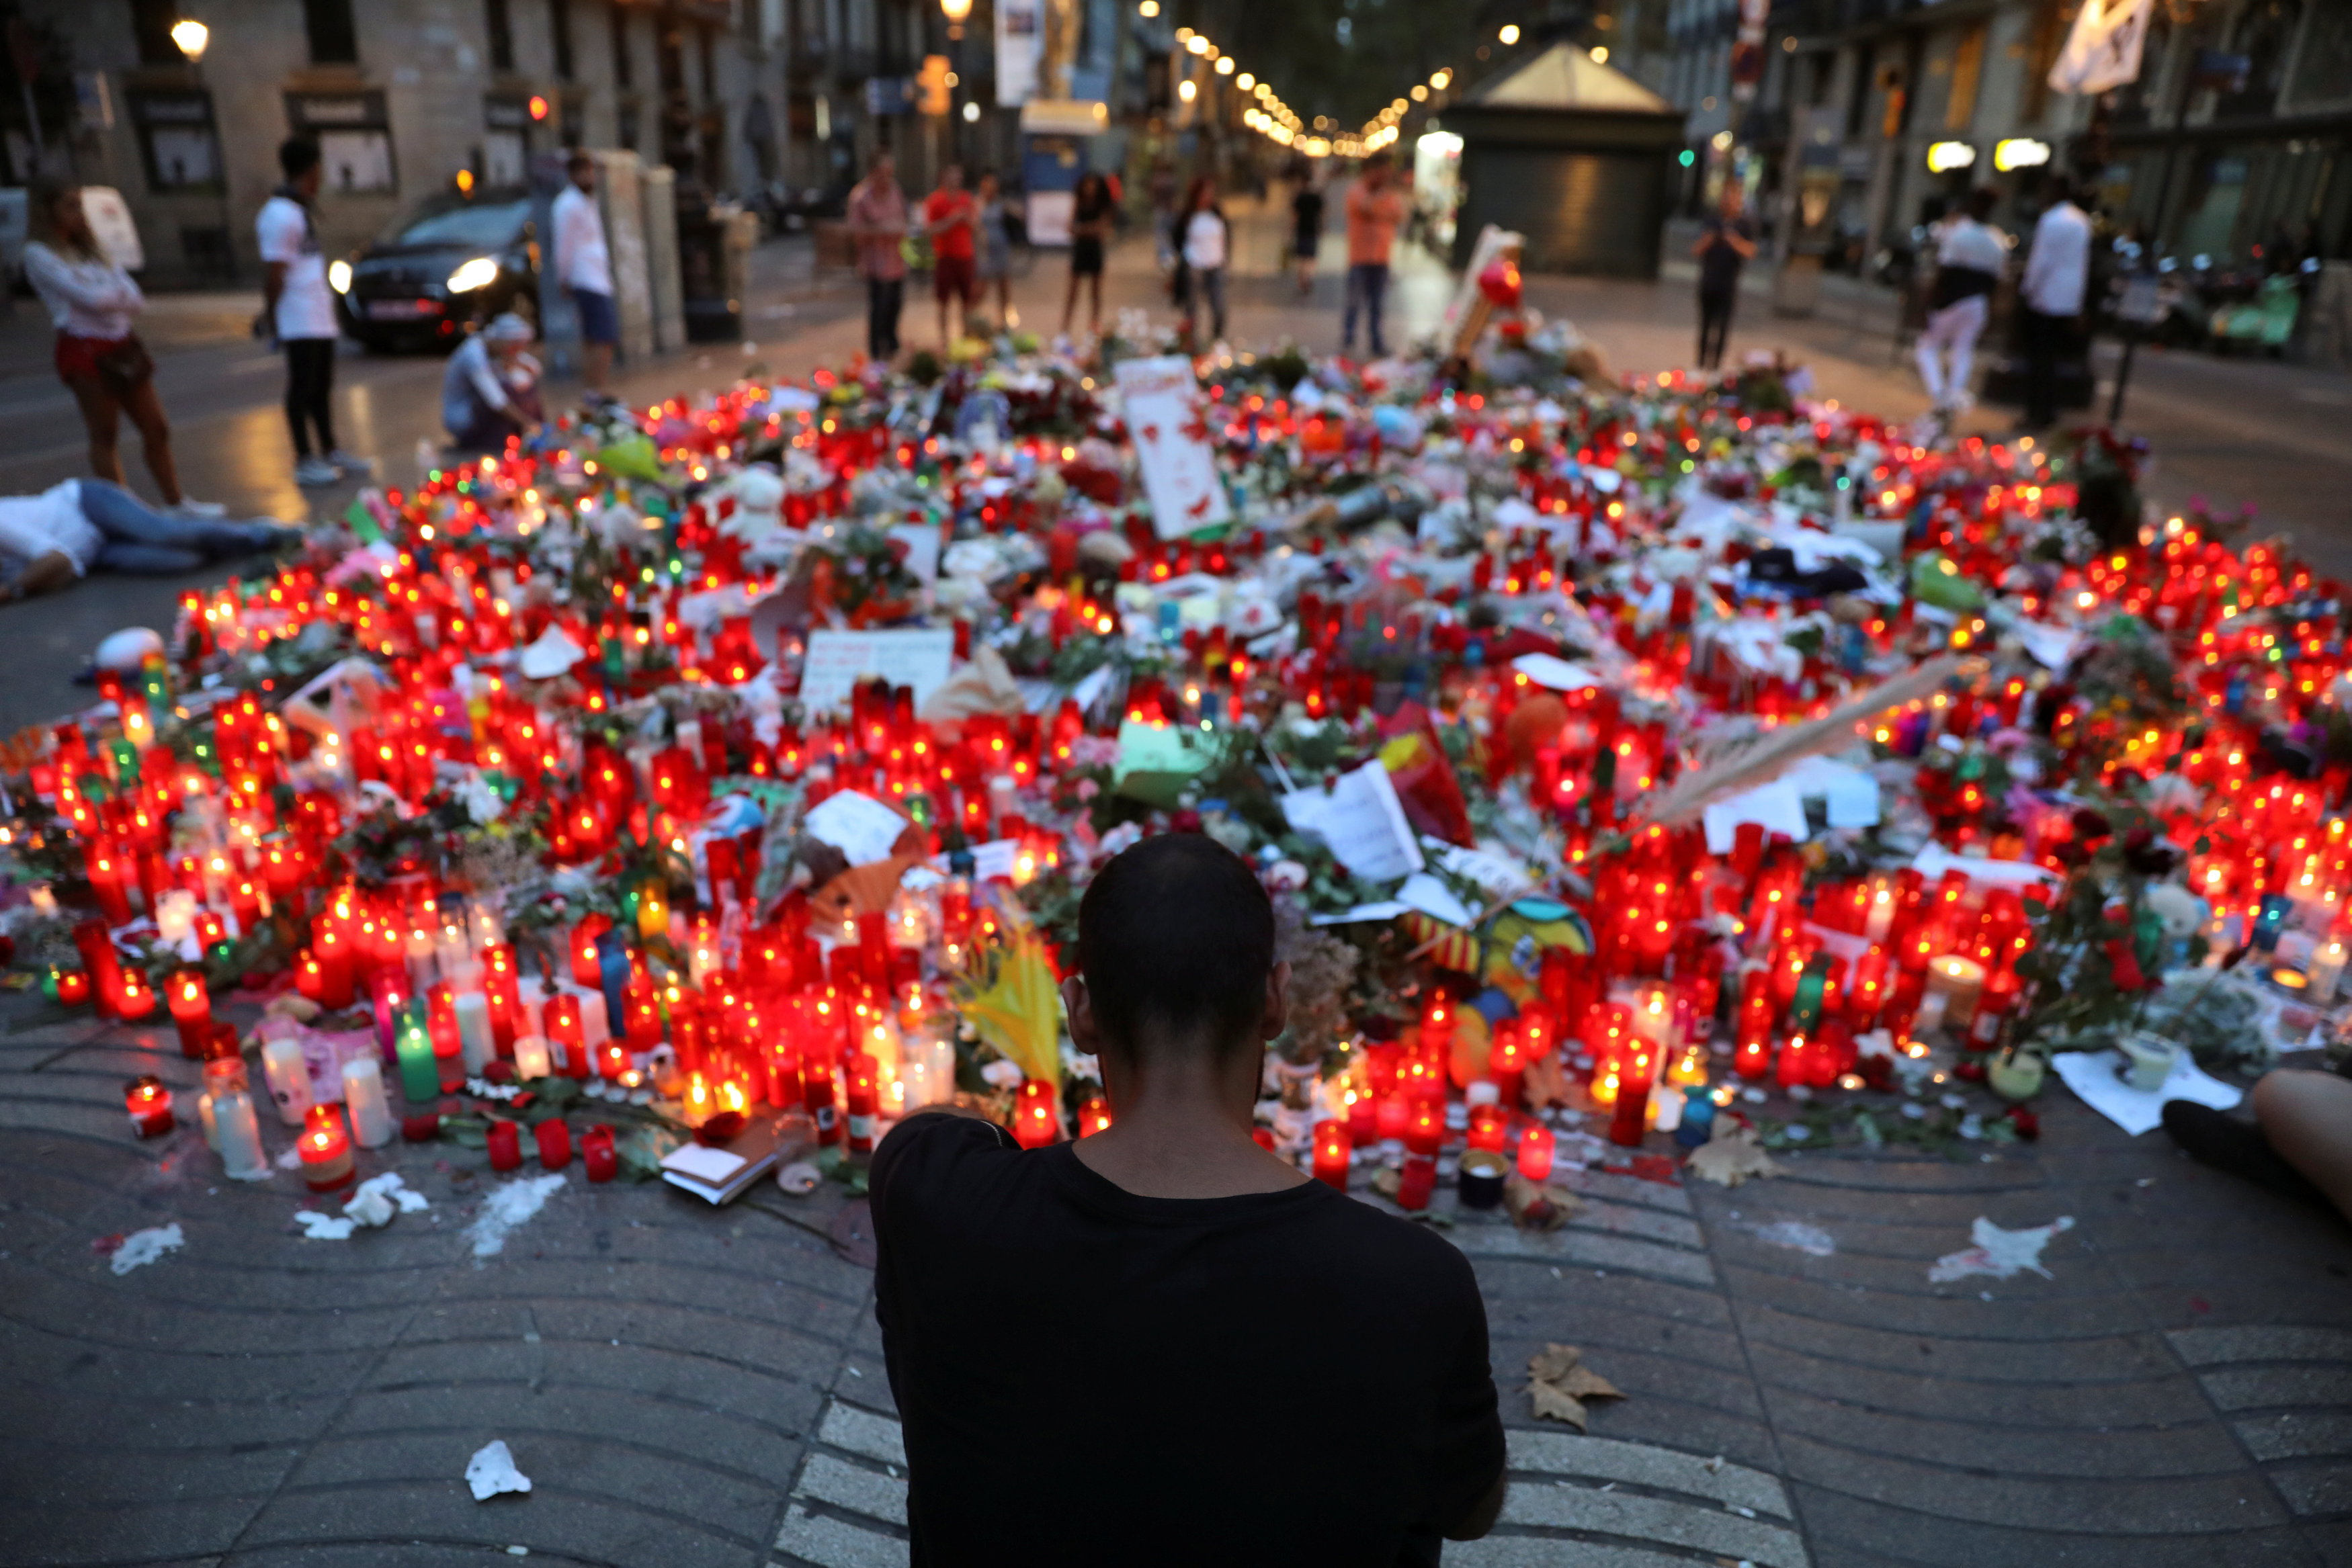 People gather at an impromptu memorial where a van crashed into pedestrians at Las Ramblas, in Barcelona, Spain on August 20, 2017. (REUTERS/Susana Vera)